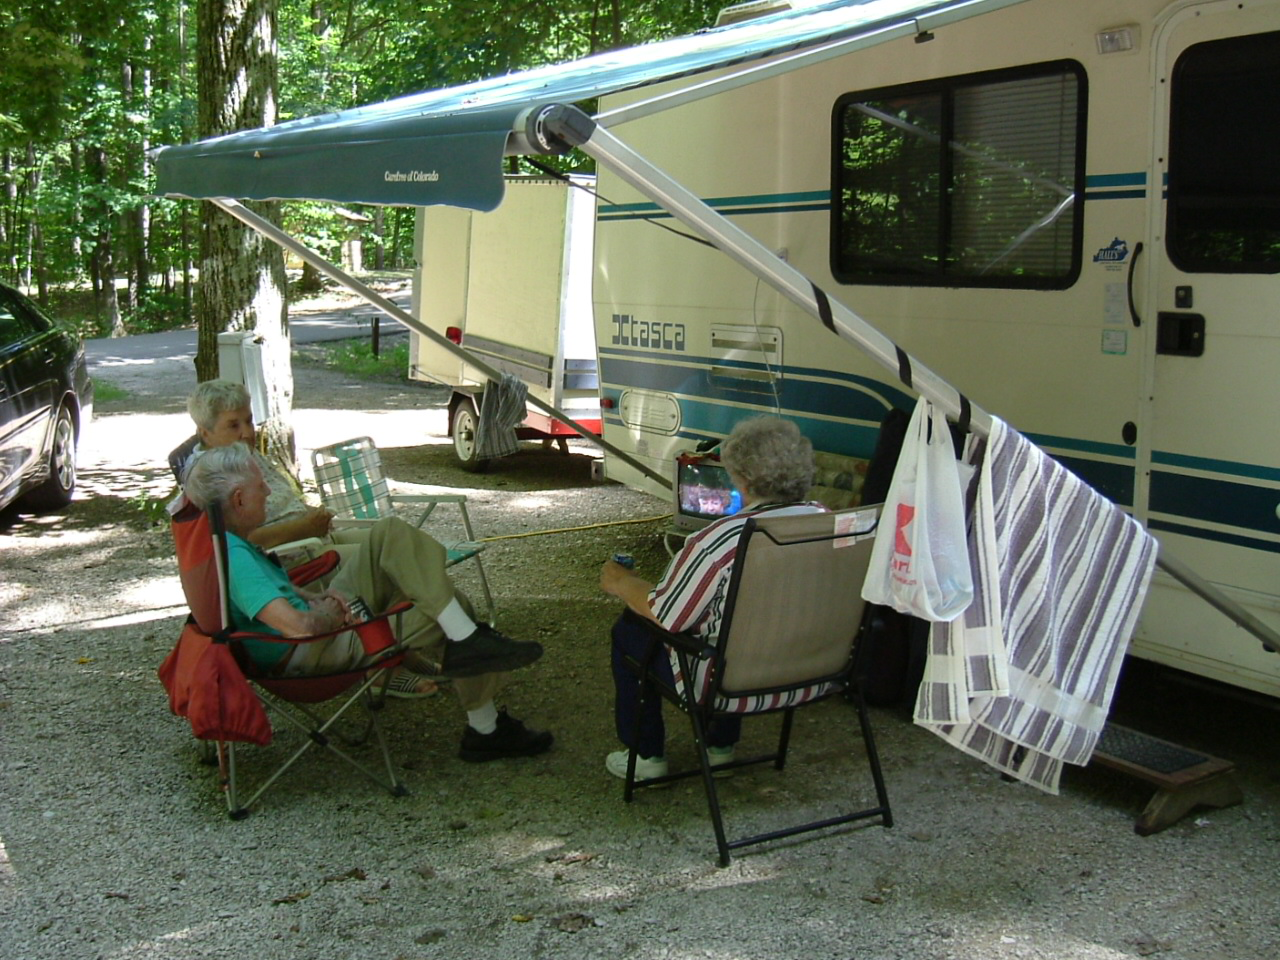 Plan Your RV Camping Trip Properly to Prepare an Amazing Vacation